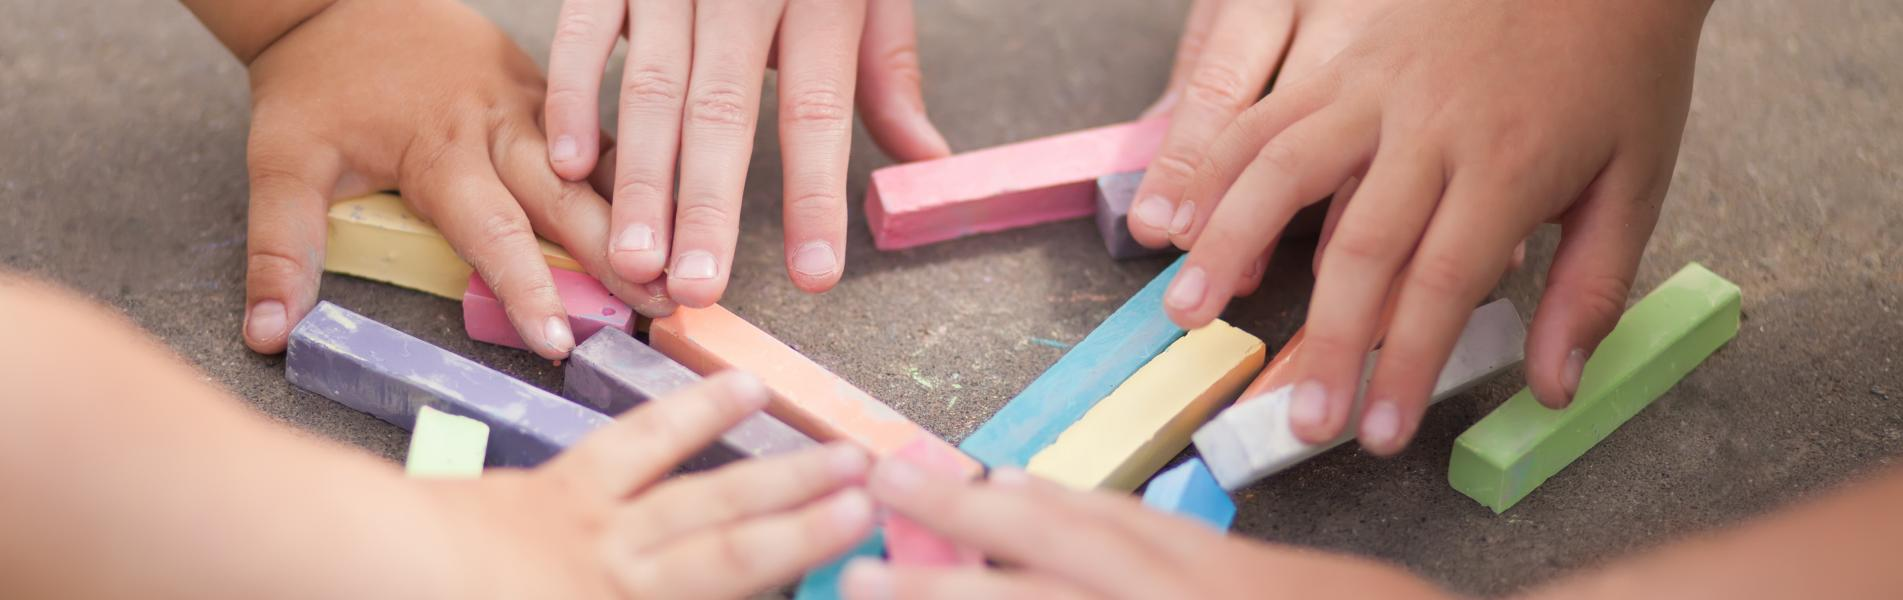 3 pairs of children's hands are touching a pile of coloured chalk on the ground